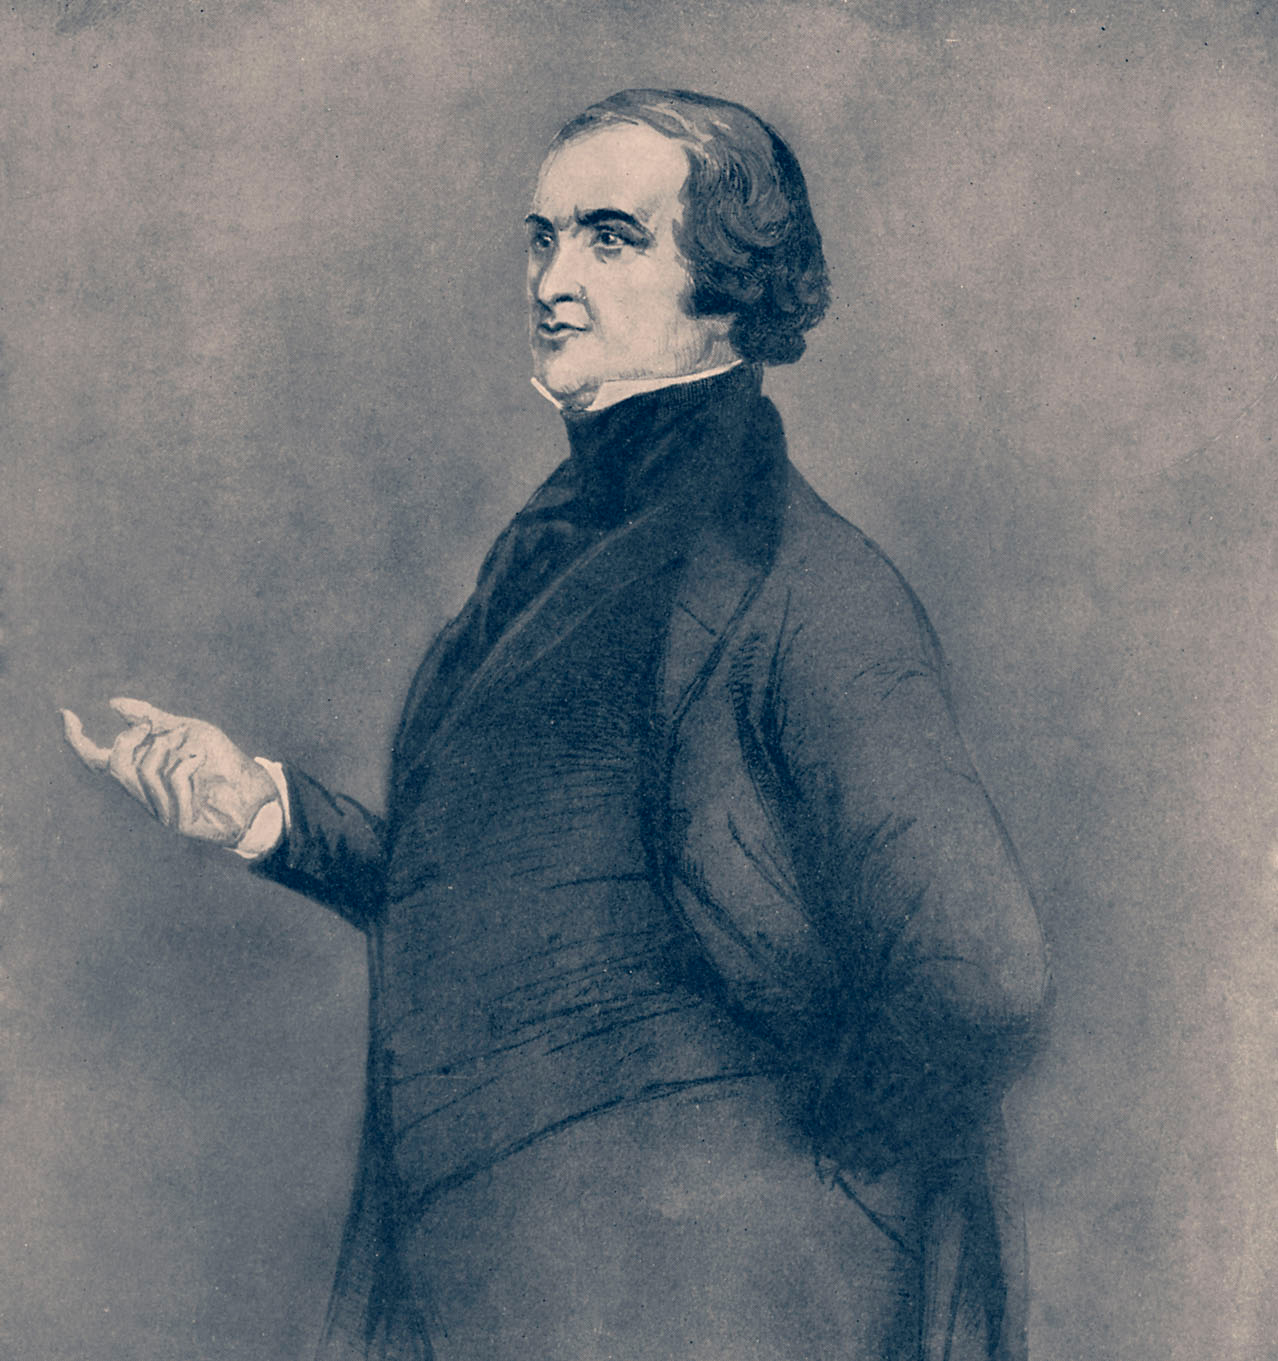 Sir Robert Peel, Prime Minister of the United Kingdom giving a speech in favor of repeal of Corn Laws, 1846.